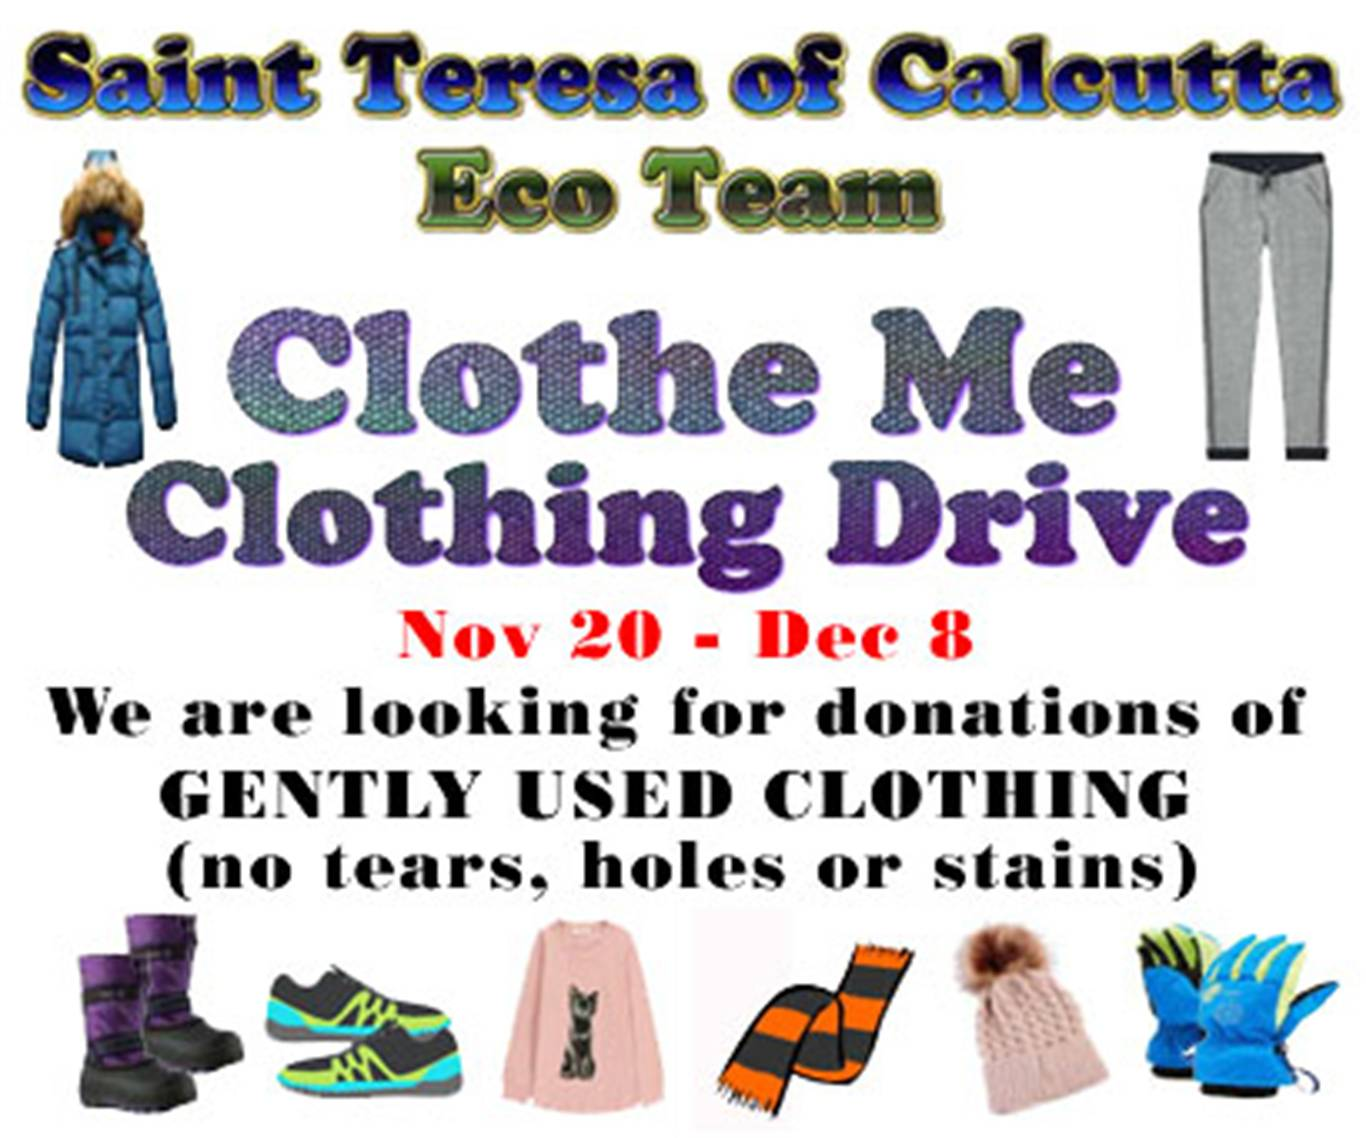 Super-Eco Team & Clothe Me